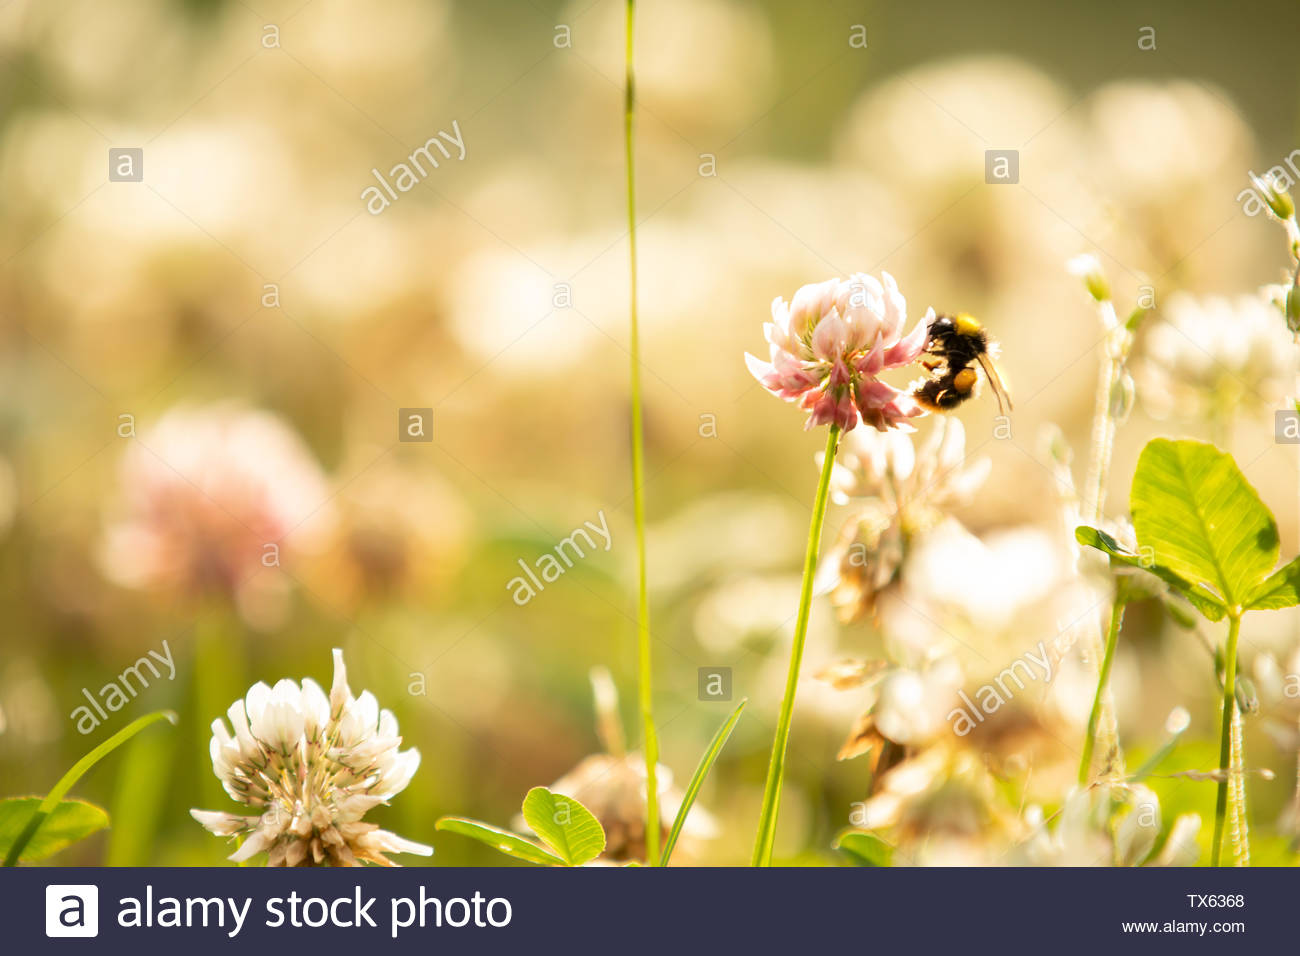 Bumblebee and clover - Stock Image